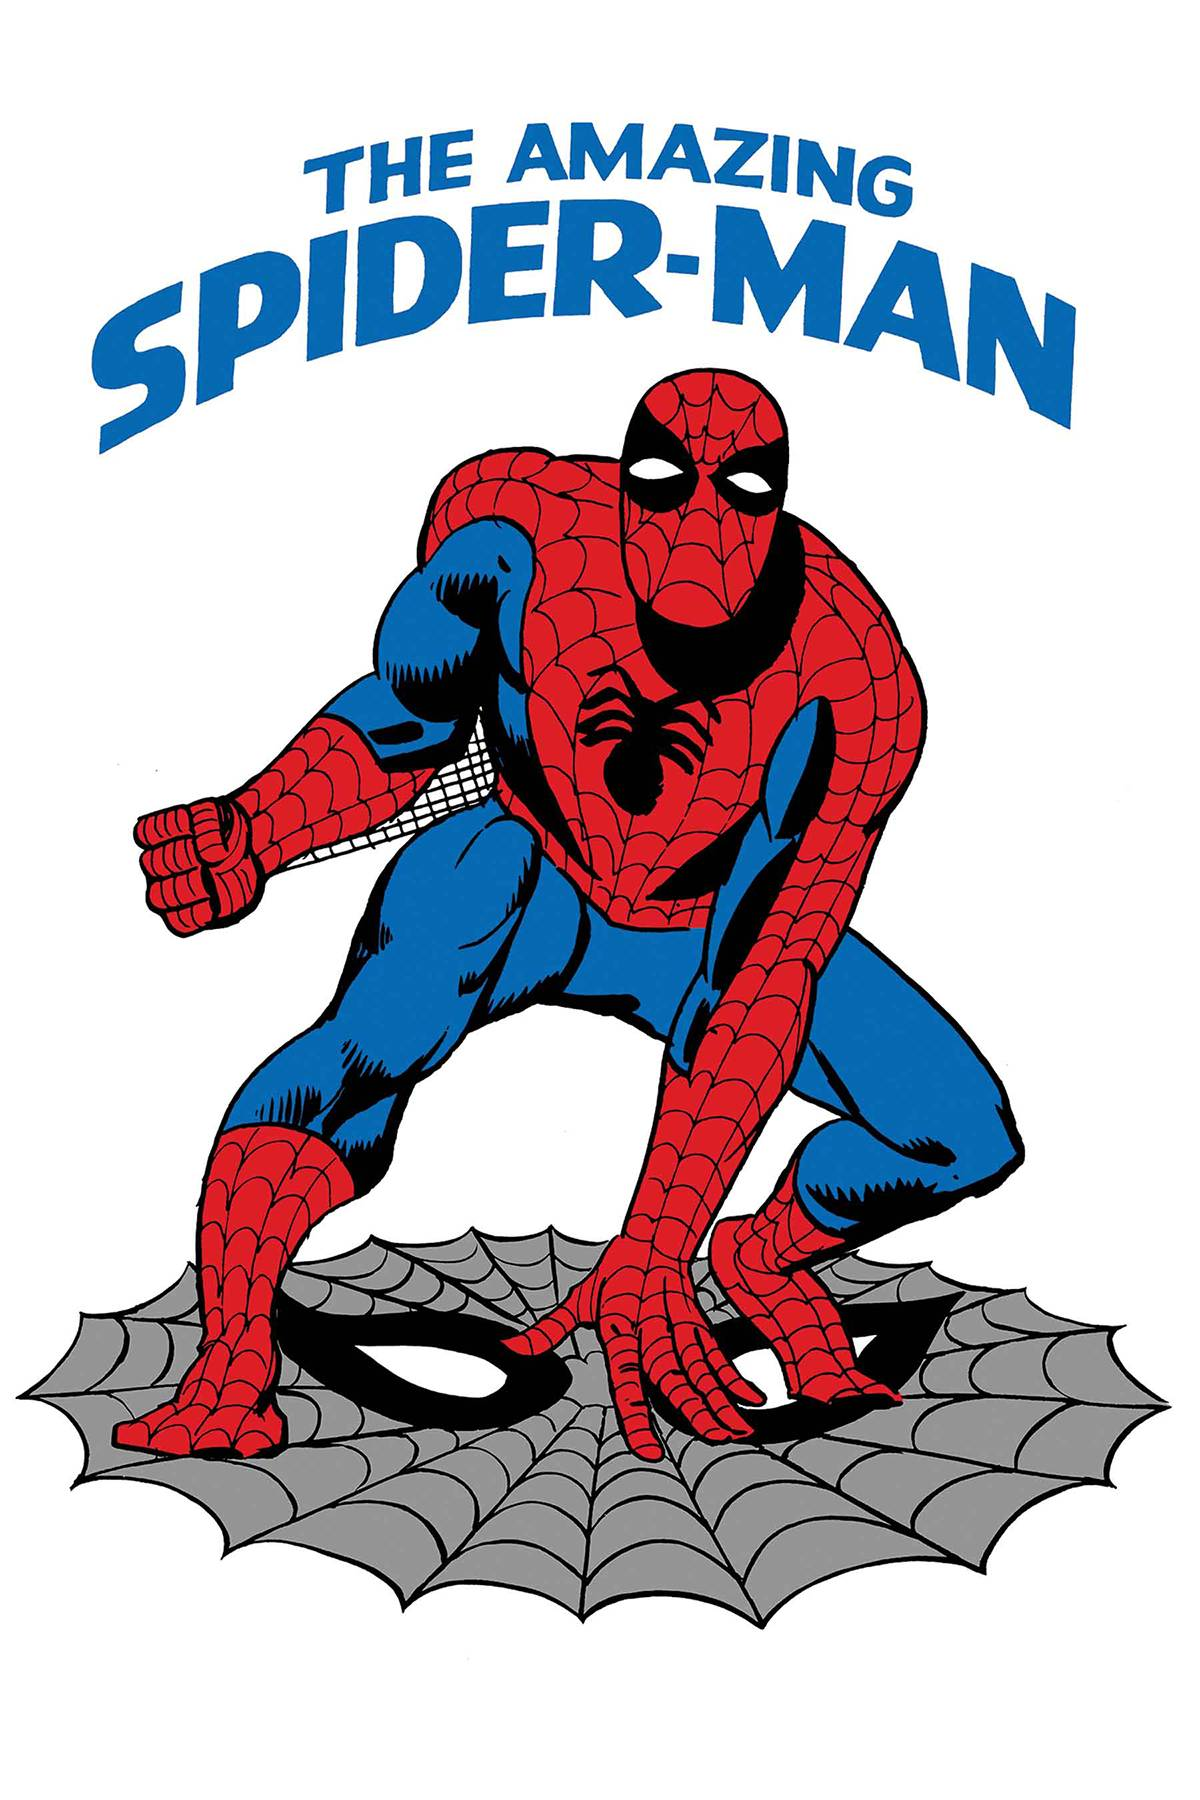 a611064dd AMAZING SPIDER-MAN #789 VARIANT DITKO 1965 T-SHIRT COVER (1 in 50 ...